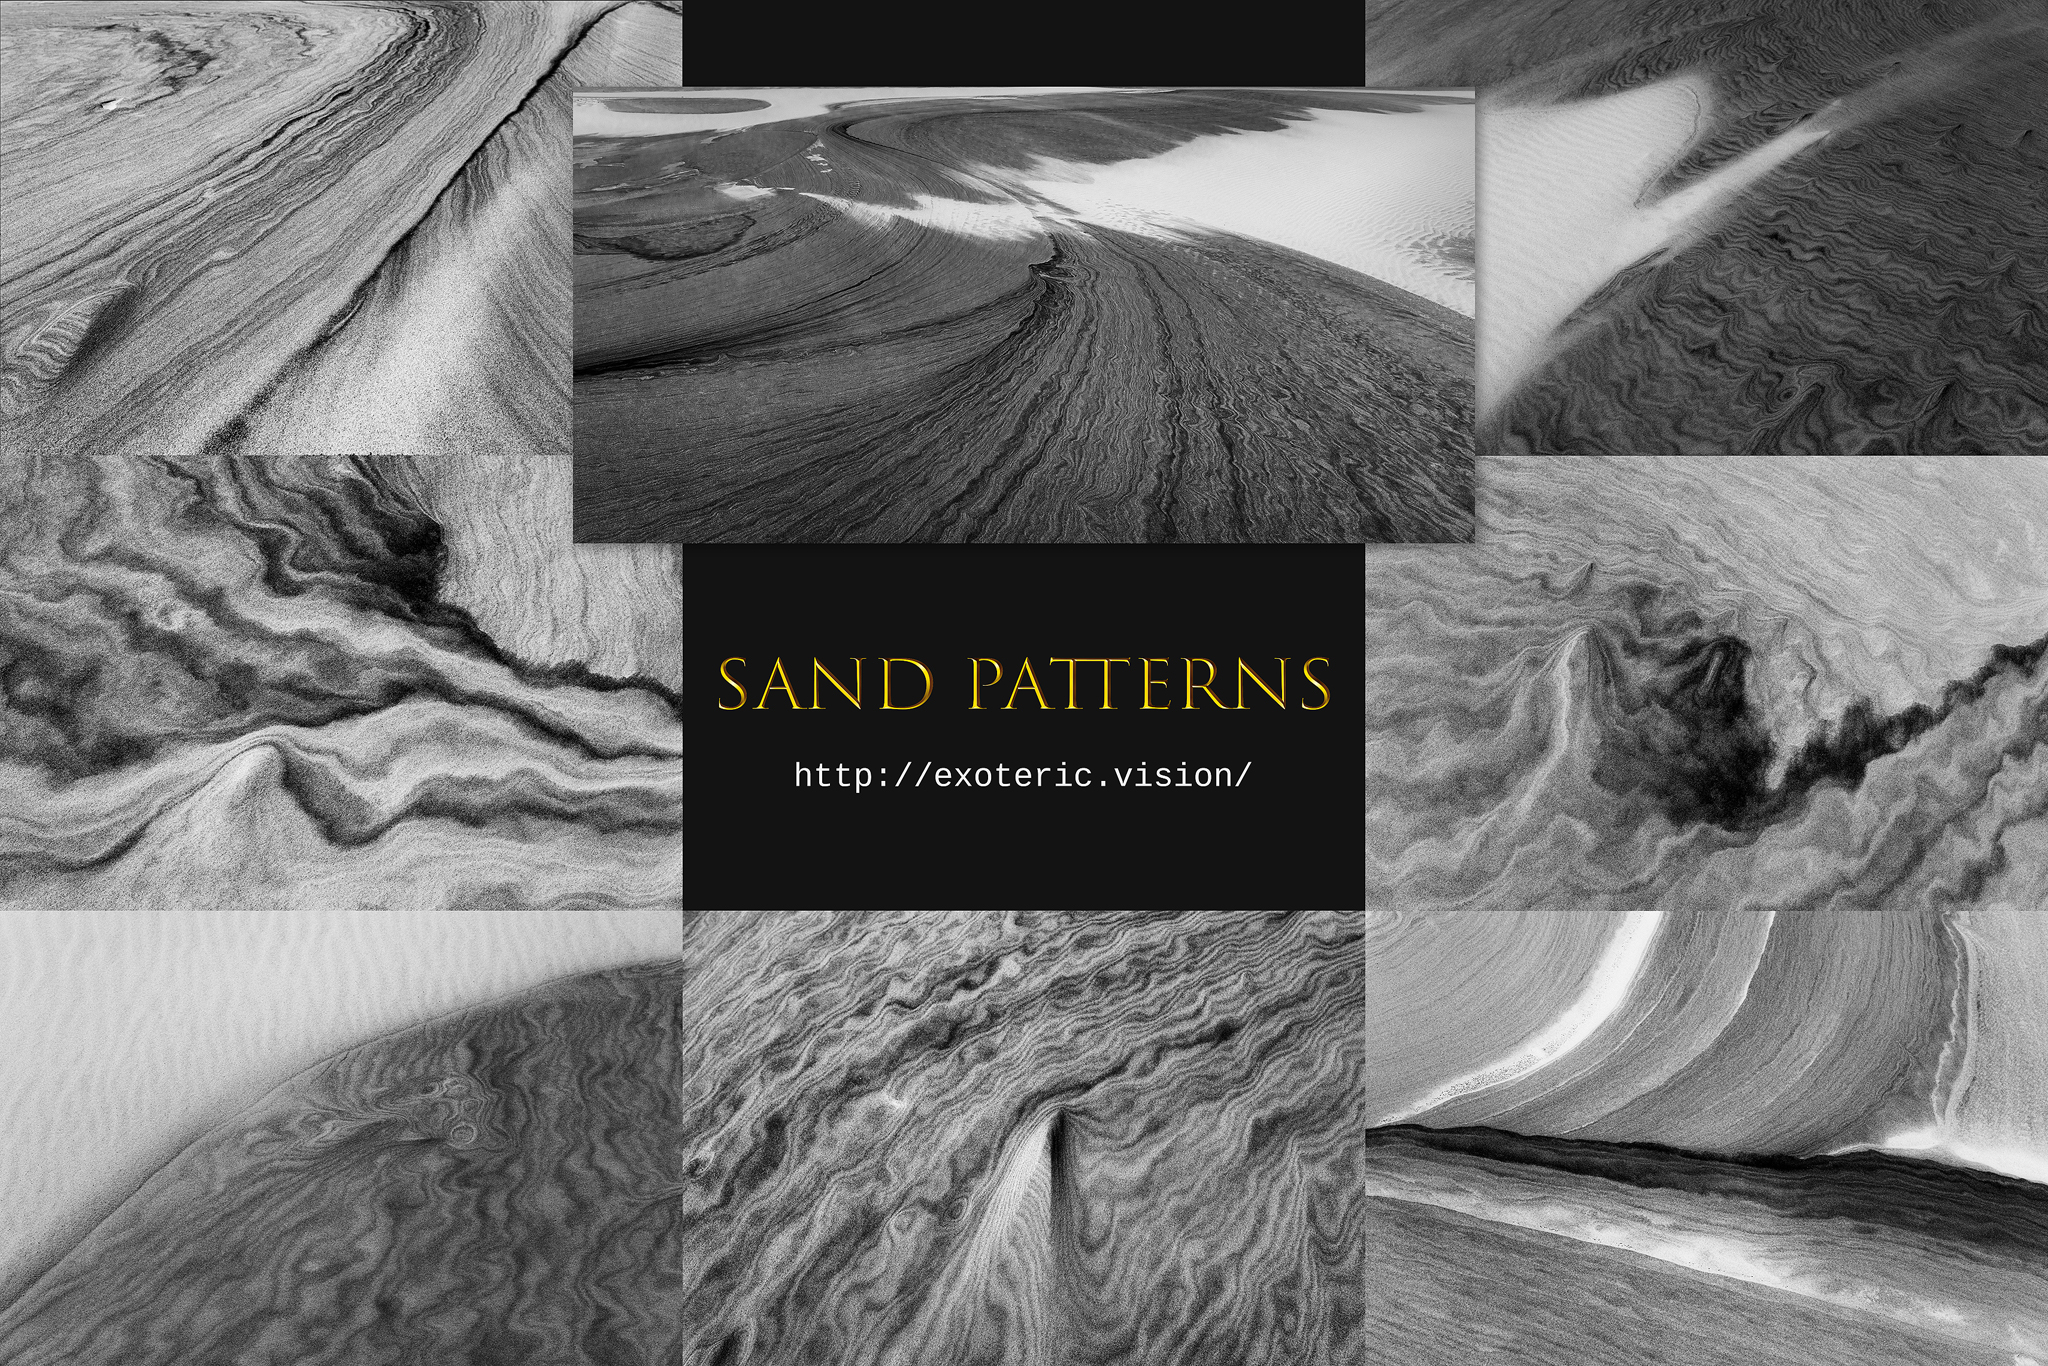 Sand Patterns - collage W2048 8bit sRGB Q100.jpg